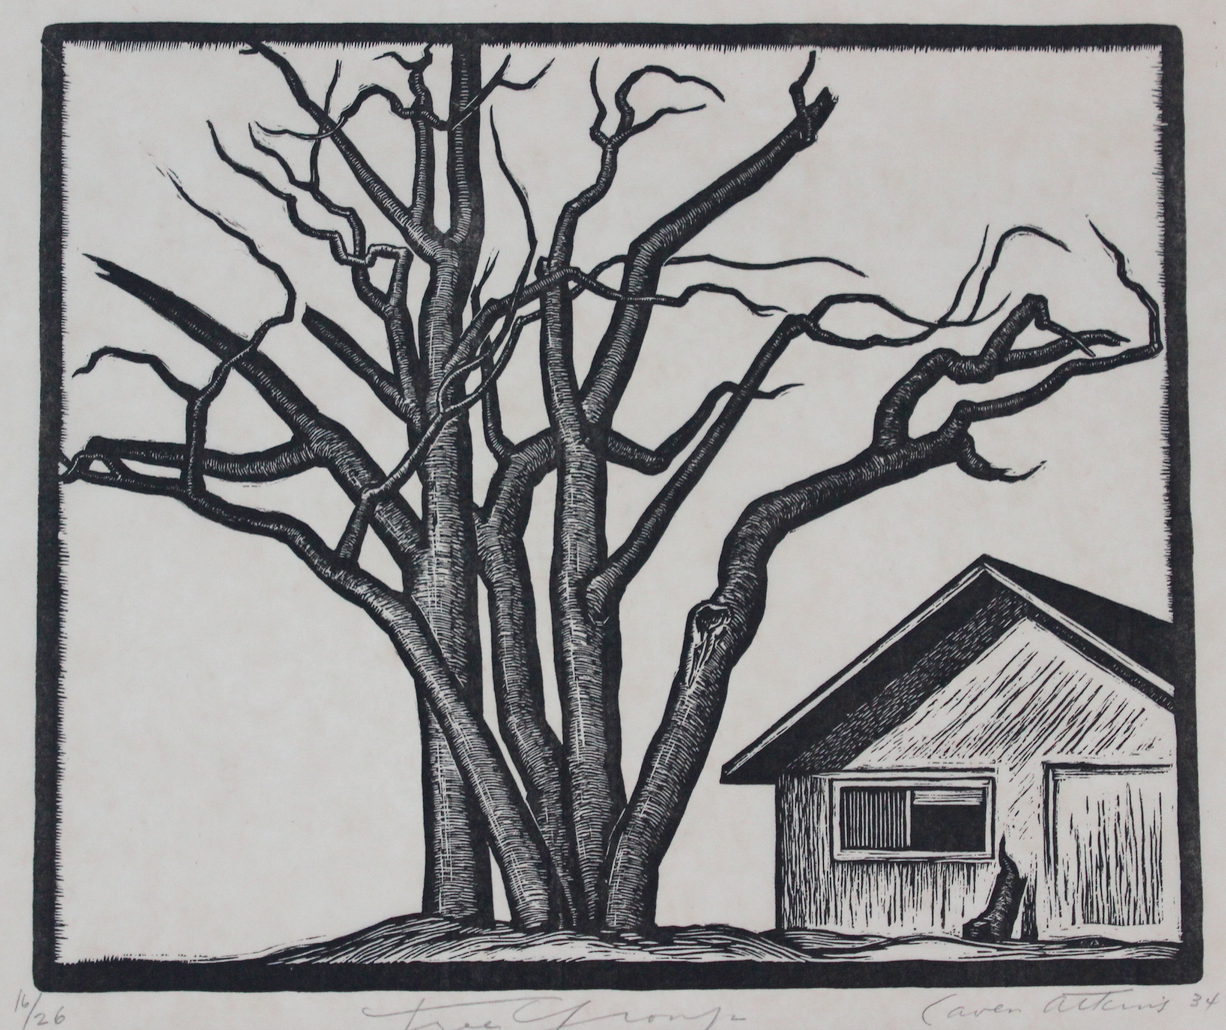 Caven Atkins, Tree Forms, 1934